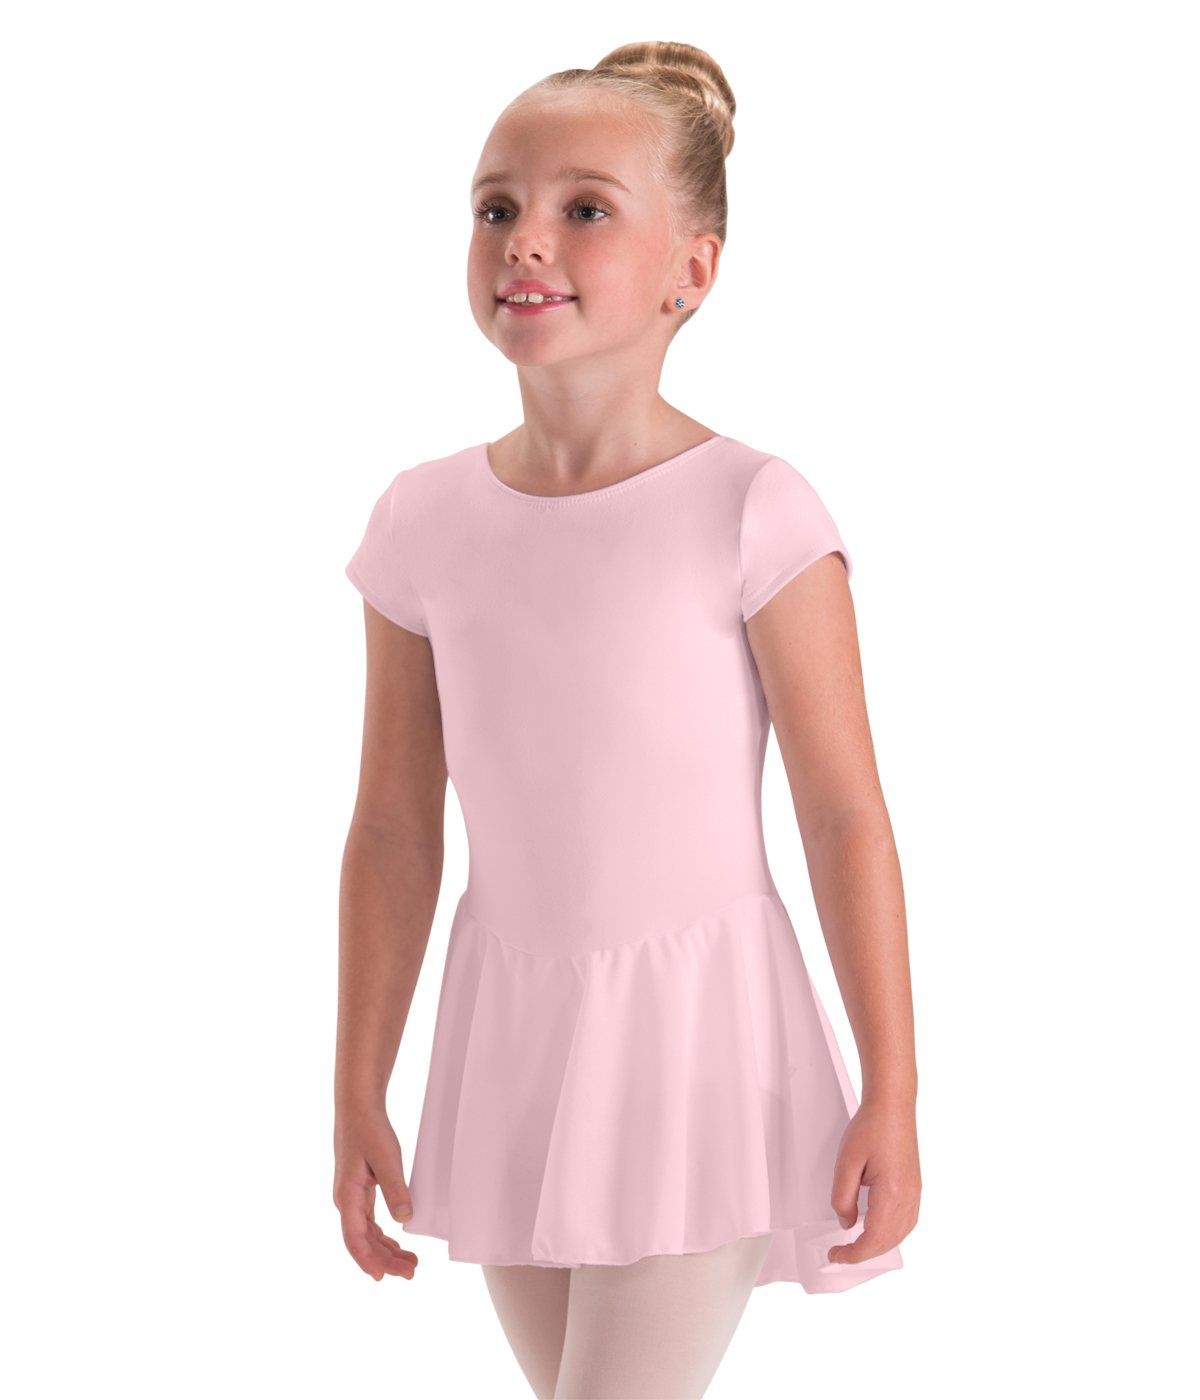 24606d67c72d Childrens Bow Back Cap Sleeve Leotard with Skirt Attached by Motionwear